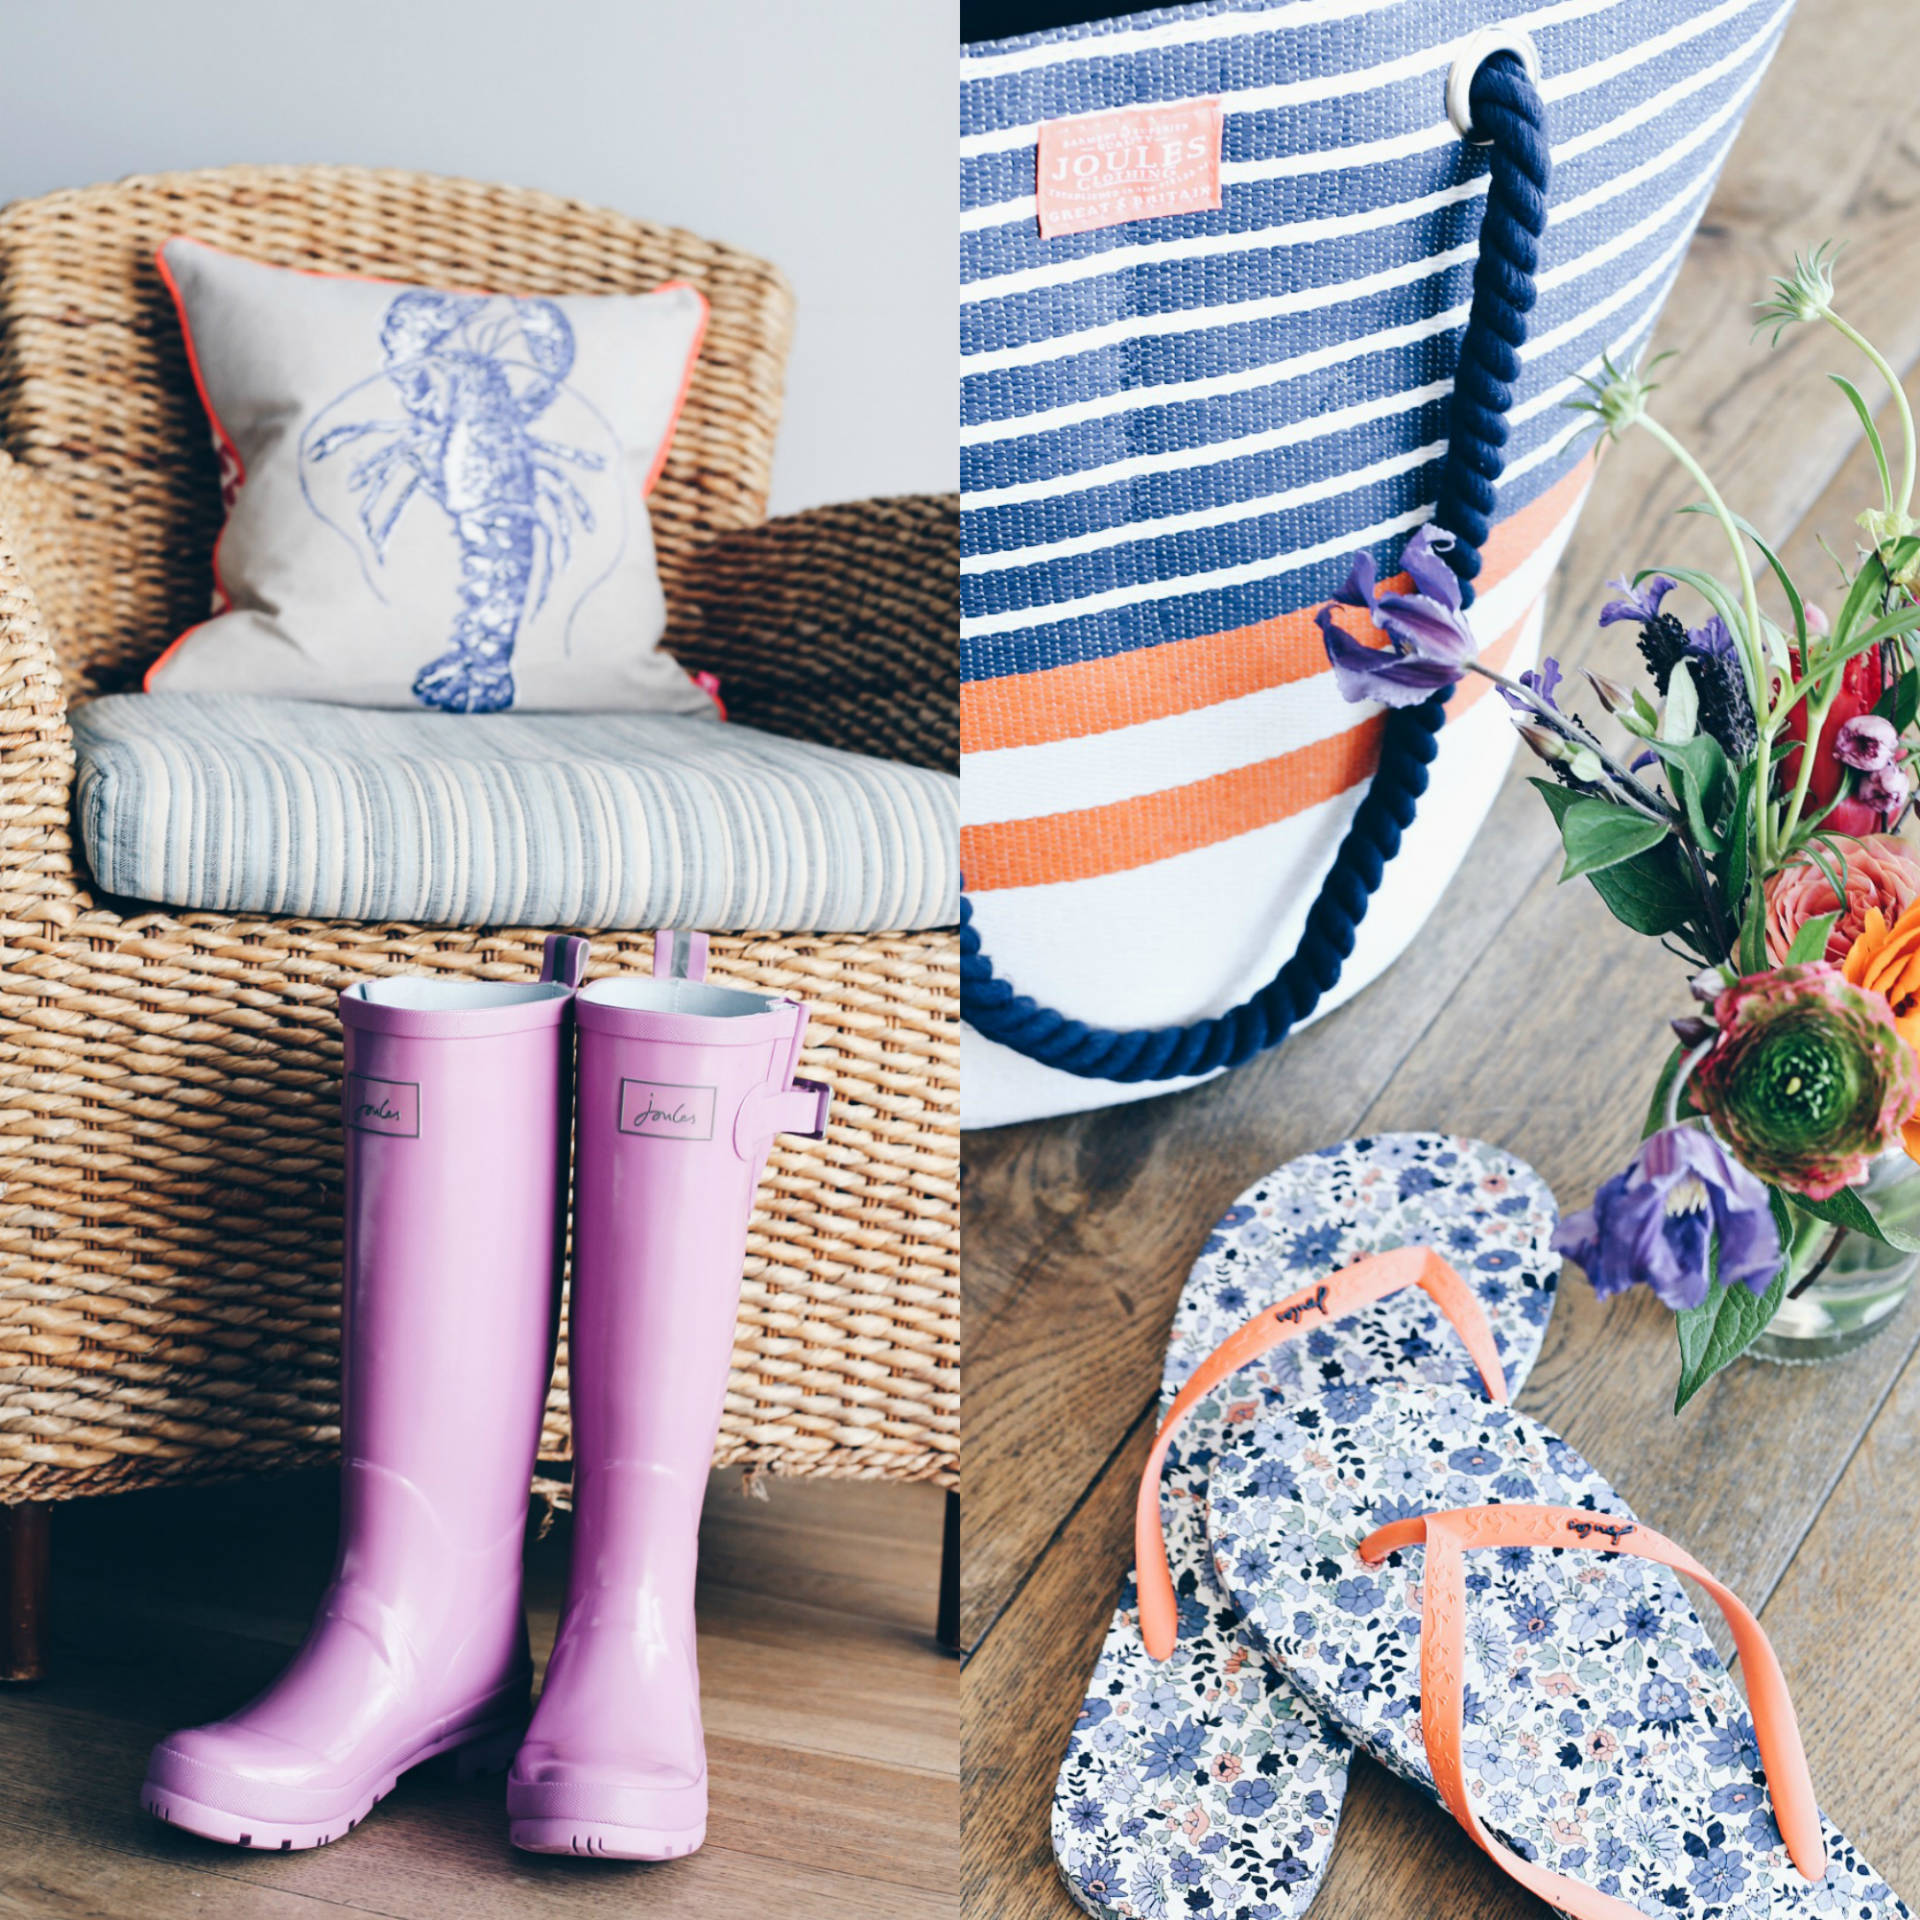 Dreaming of Chanel wearing Joules SS16 wellies and flip-flops in Watergate Bay, Cornwall